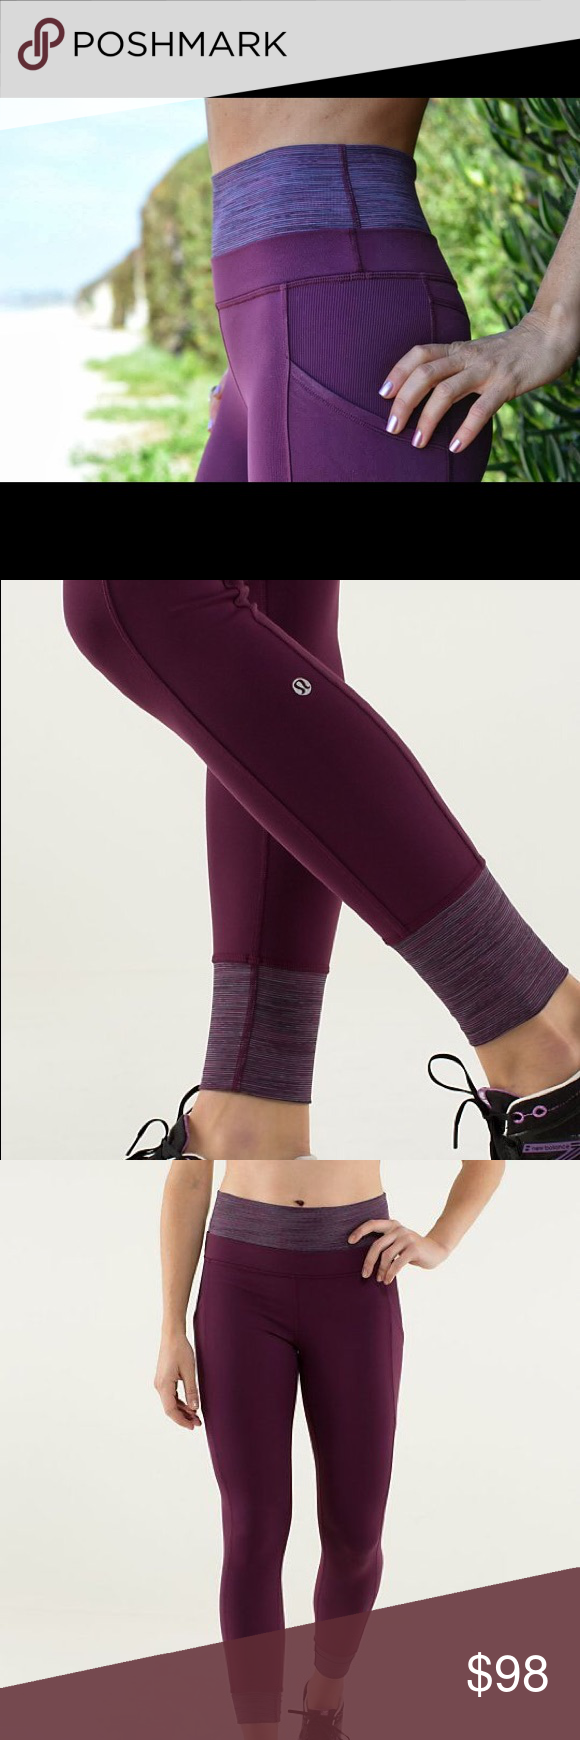 lululemon athletica En Route Crop PLUM size 6 3/4 length crop hardly worn! They are made of luon which is a blend of nylon and lycra. Super comfortable with handy side pockets! lululemon athletica Pants Leggings